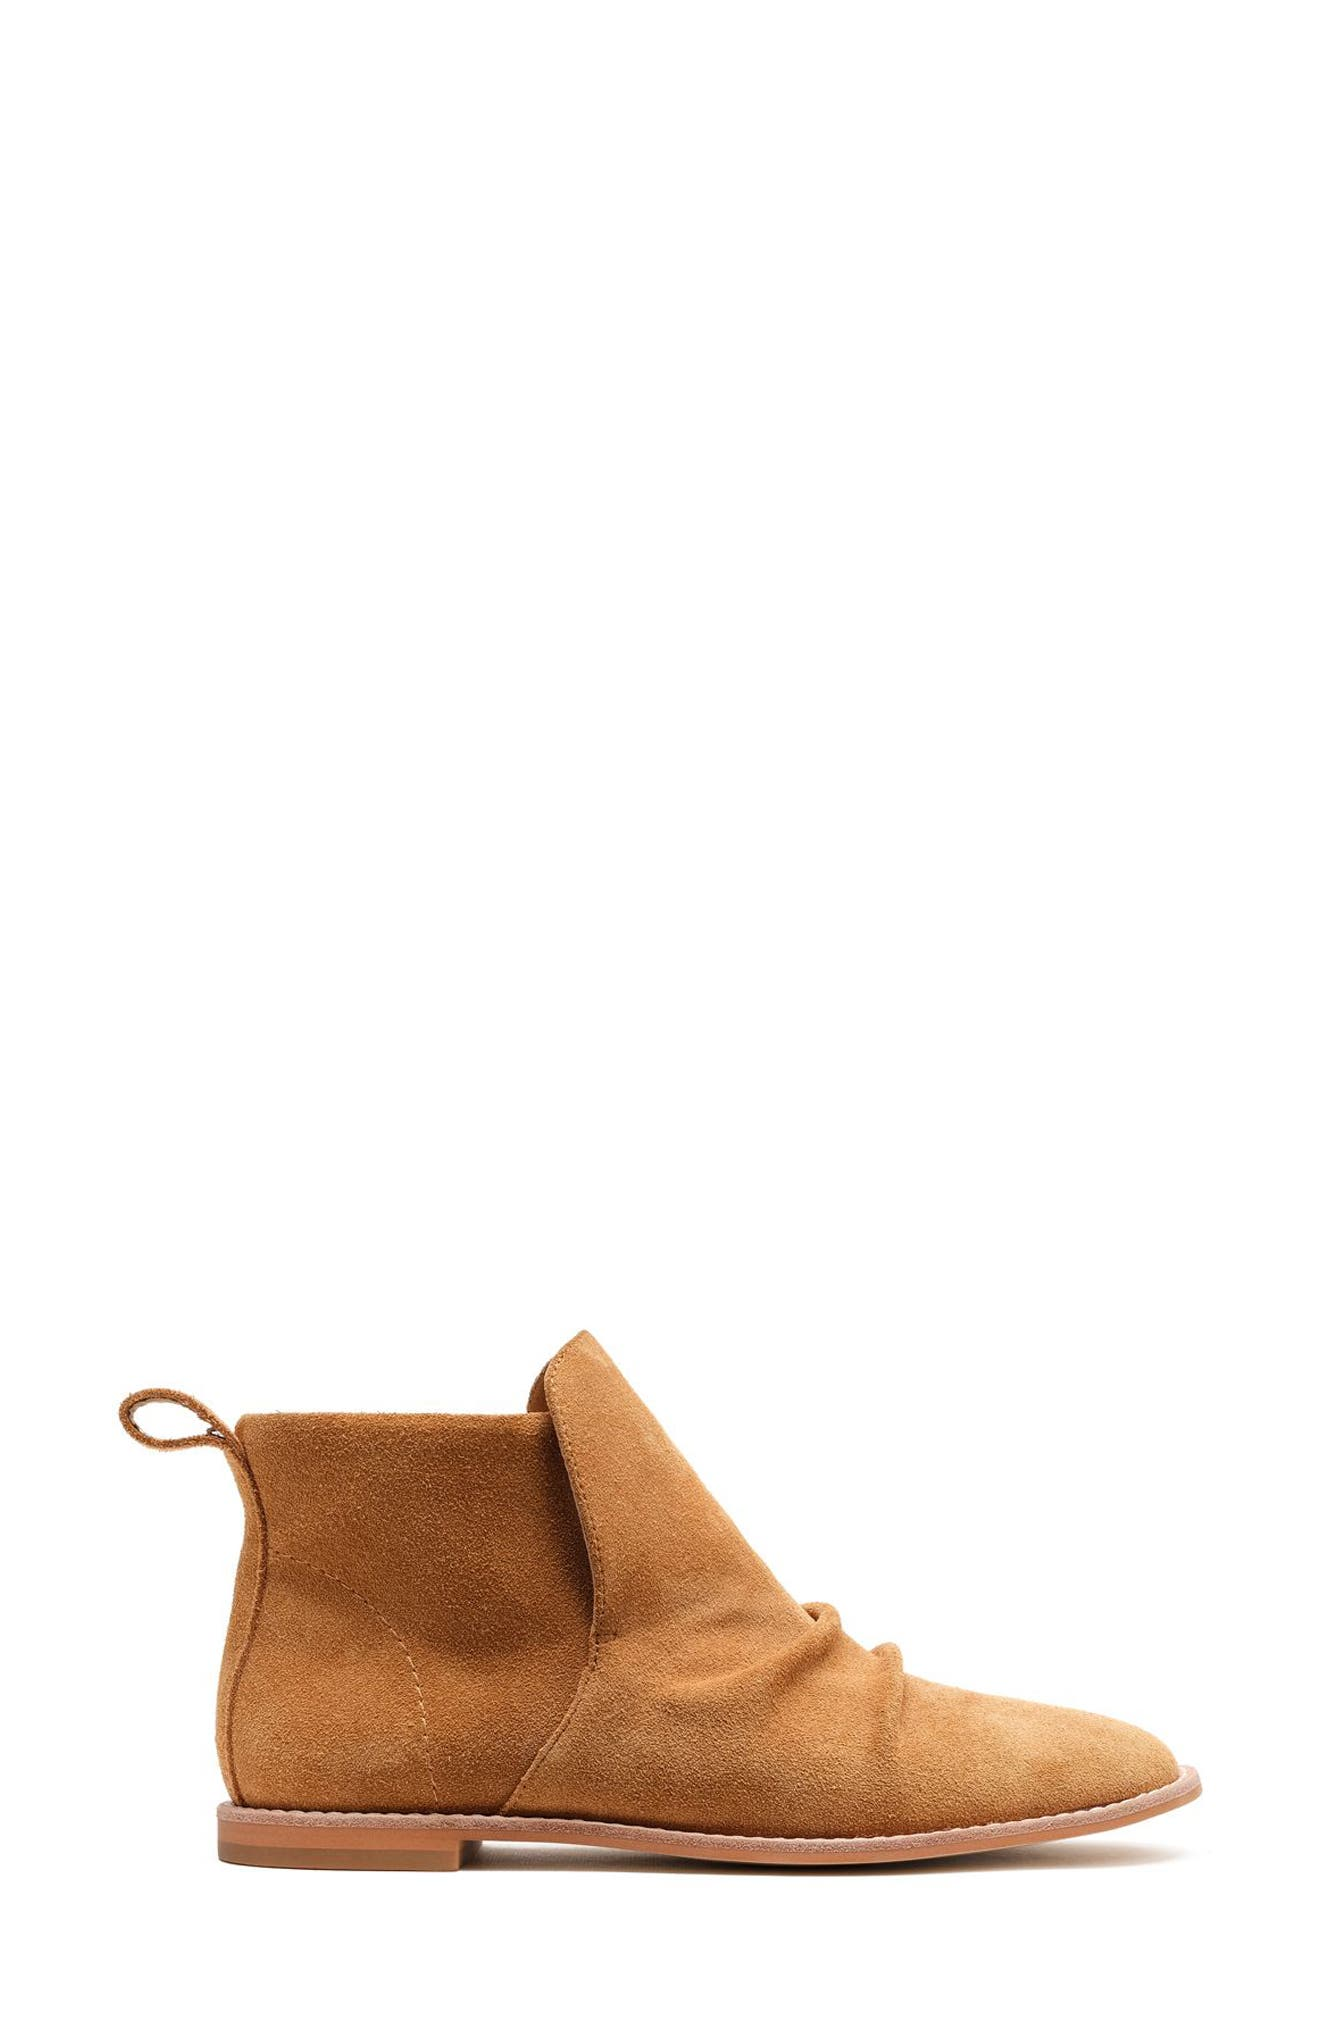 Macey Bootie,                             Alternate thumbnail 8, color,